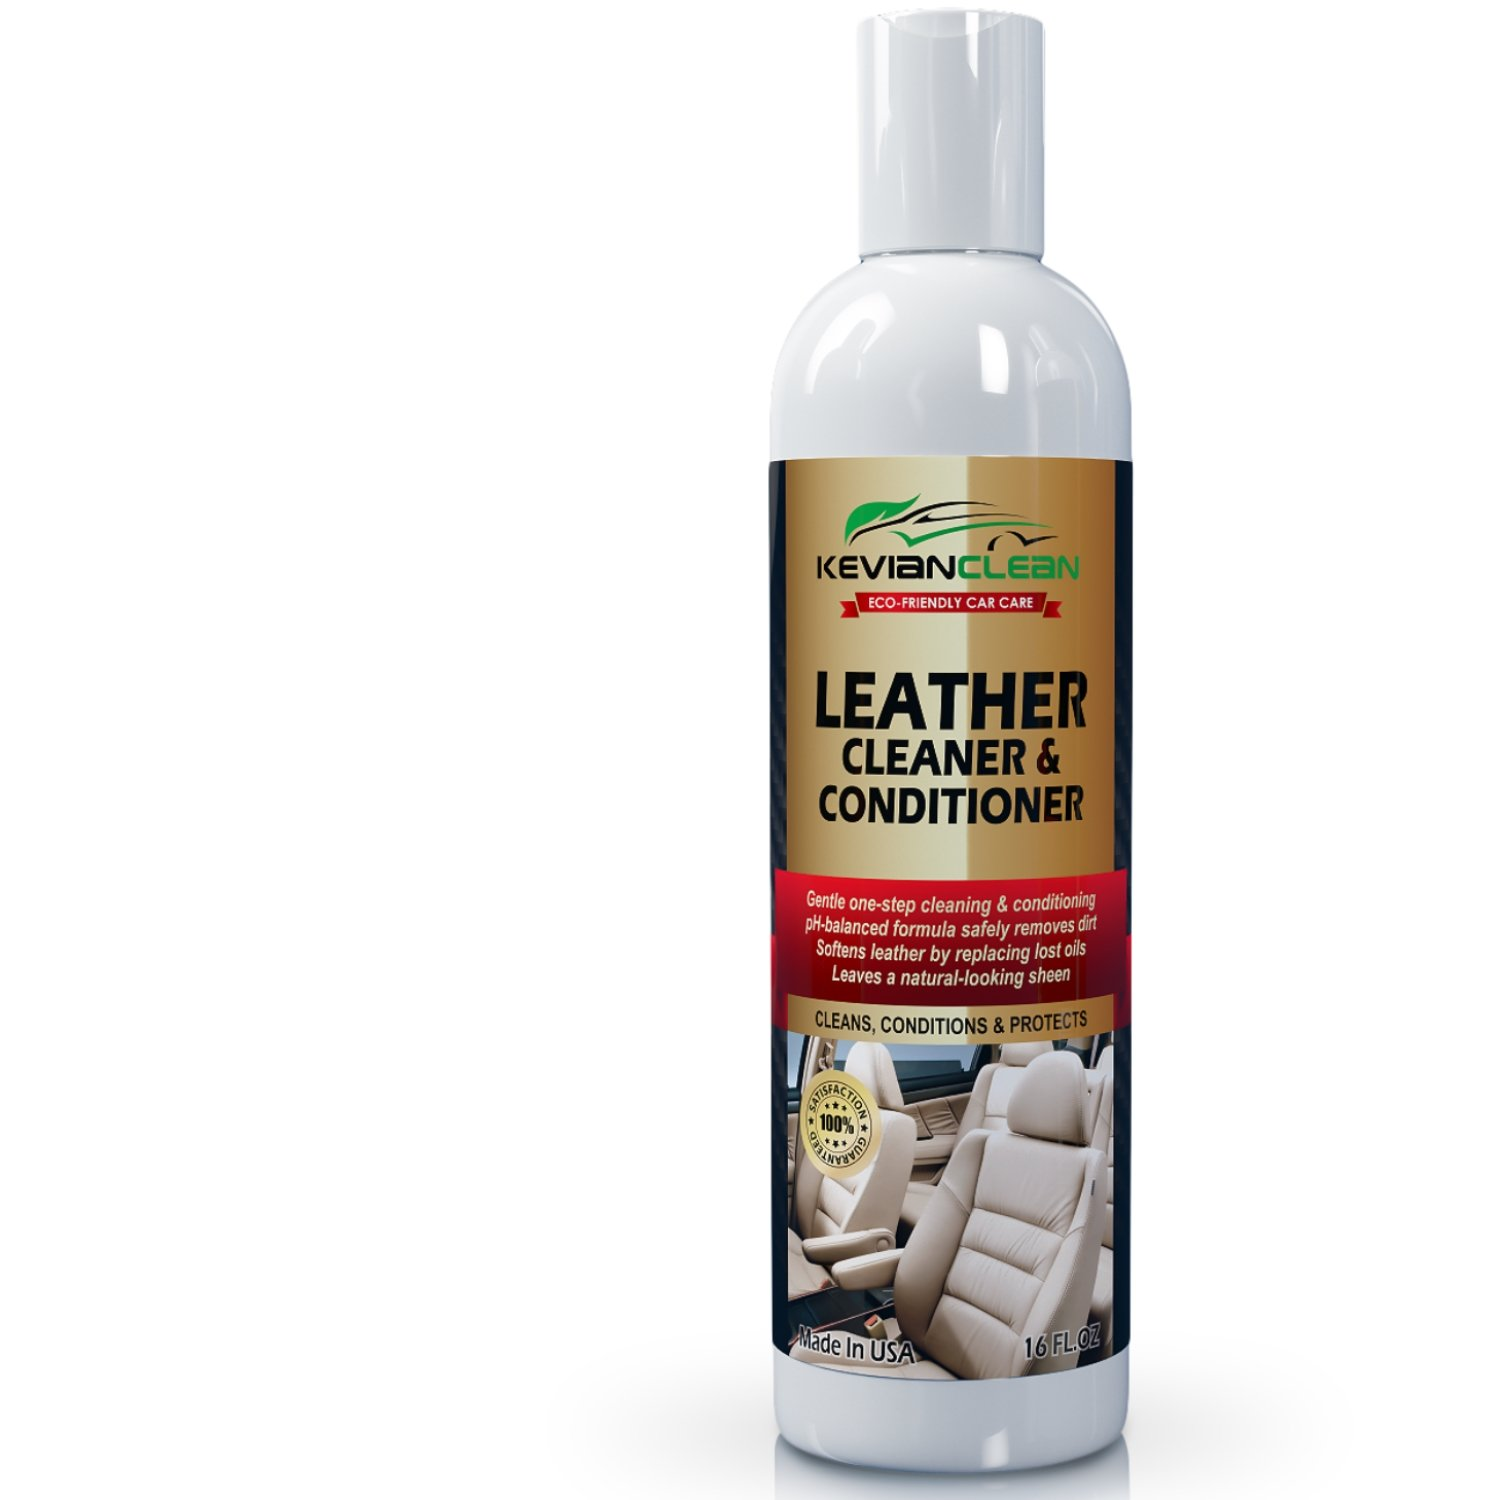 Leather Cleaner amp Conditioner by KevianClean Auto  : 61babU51HBLSL1500 from www.ebay.com size 1500 x 1500 jpeg 111kB